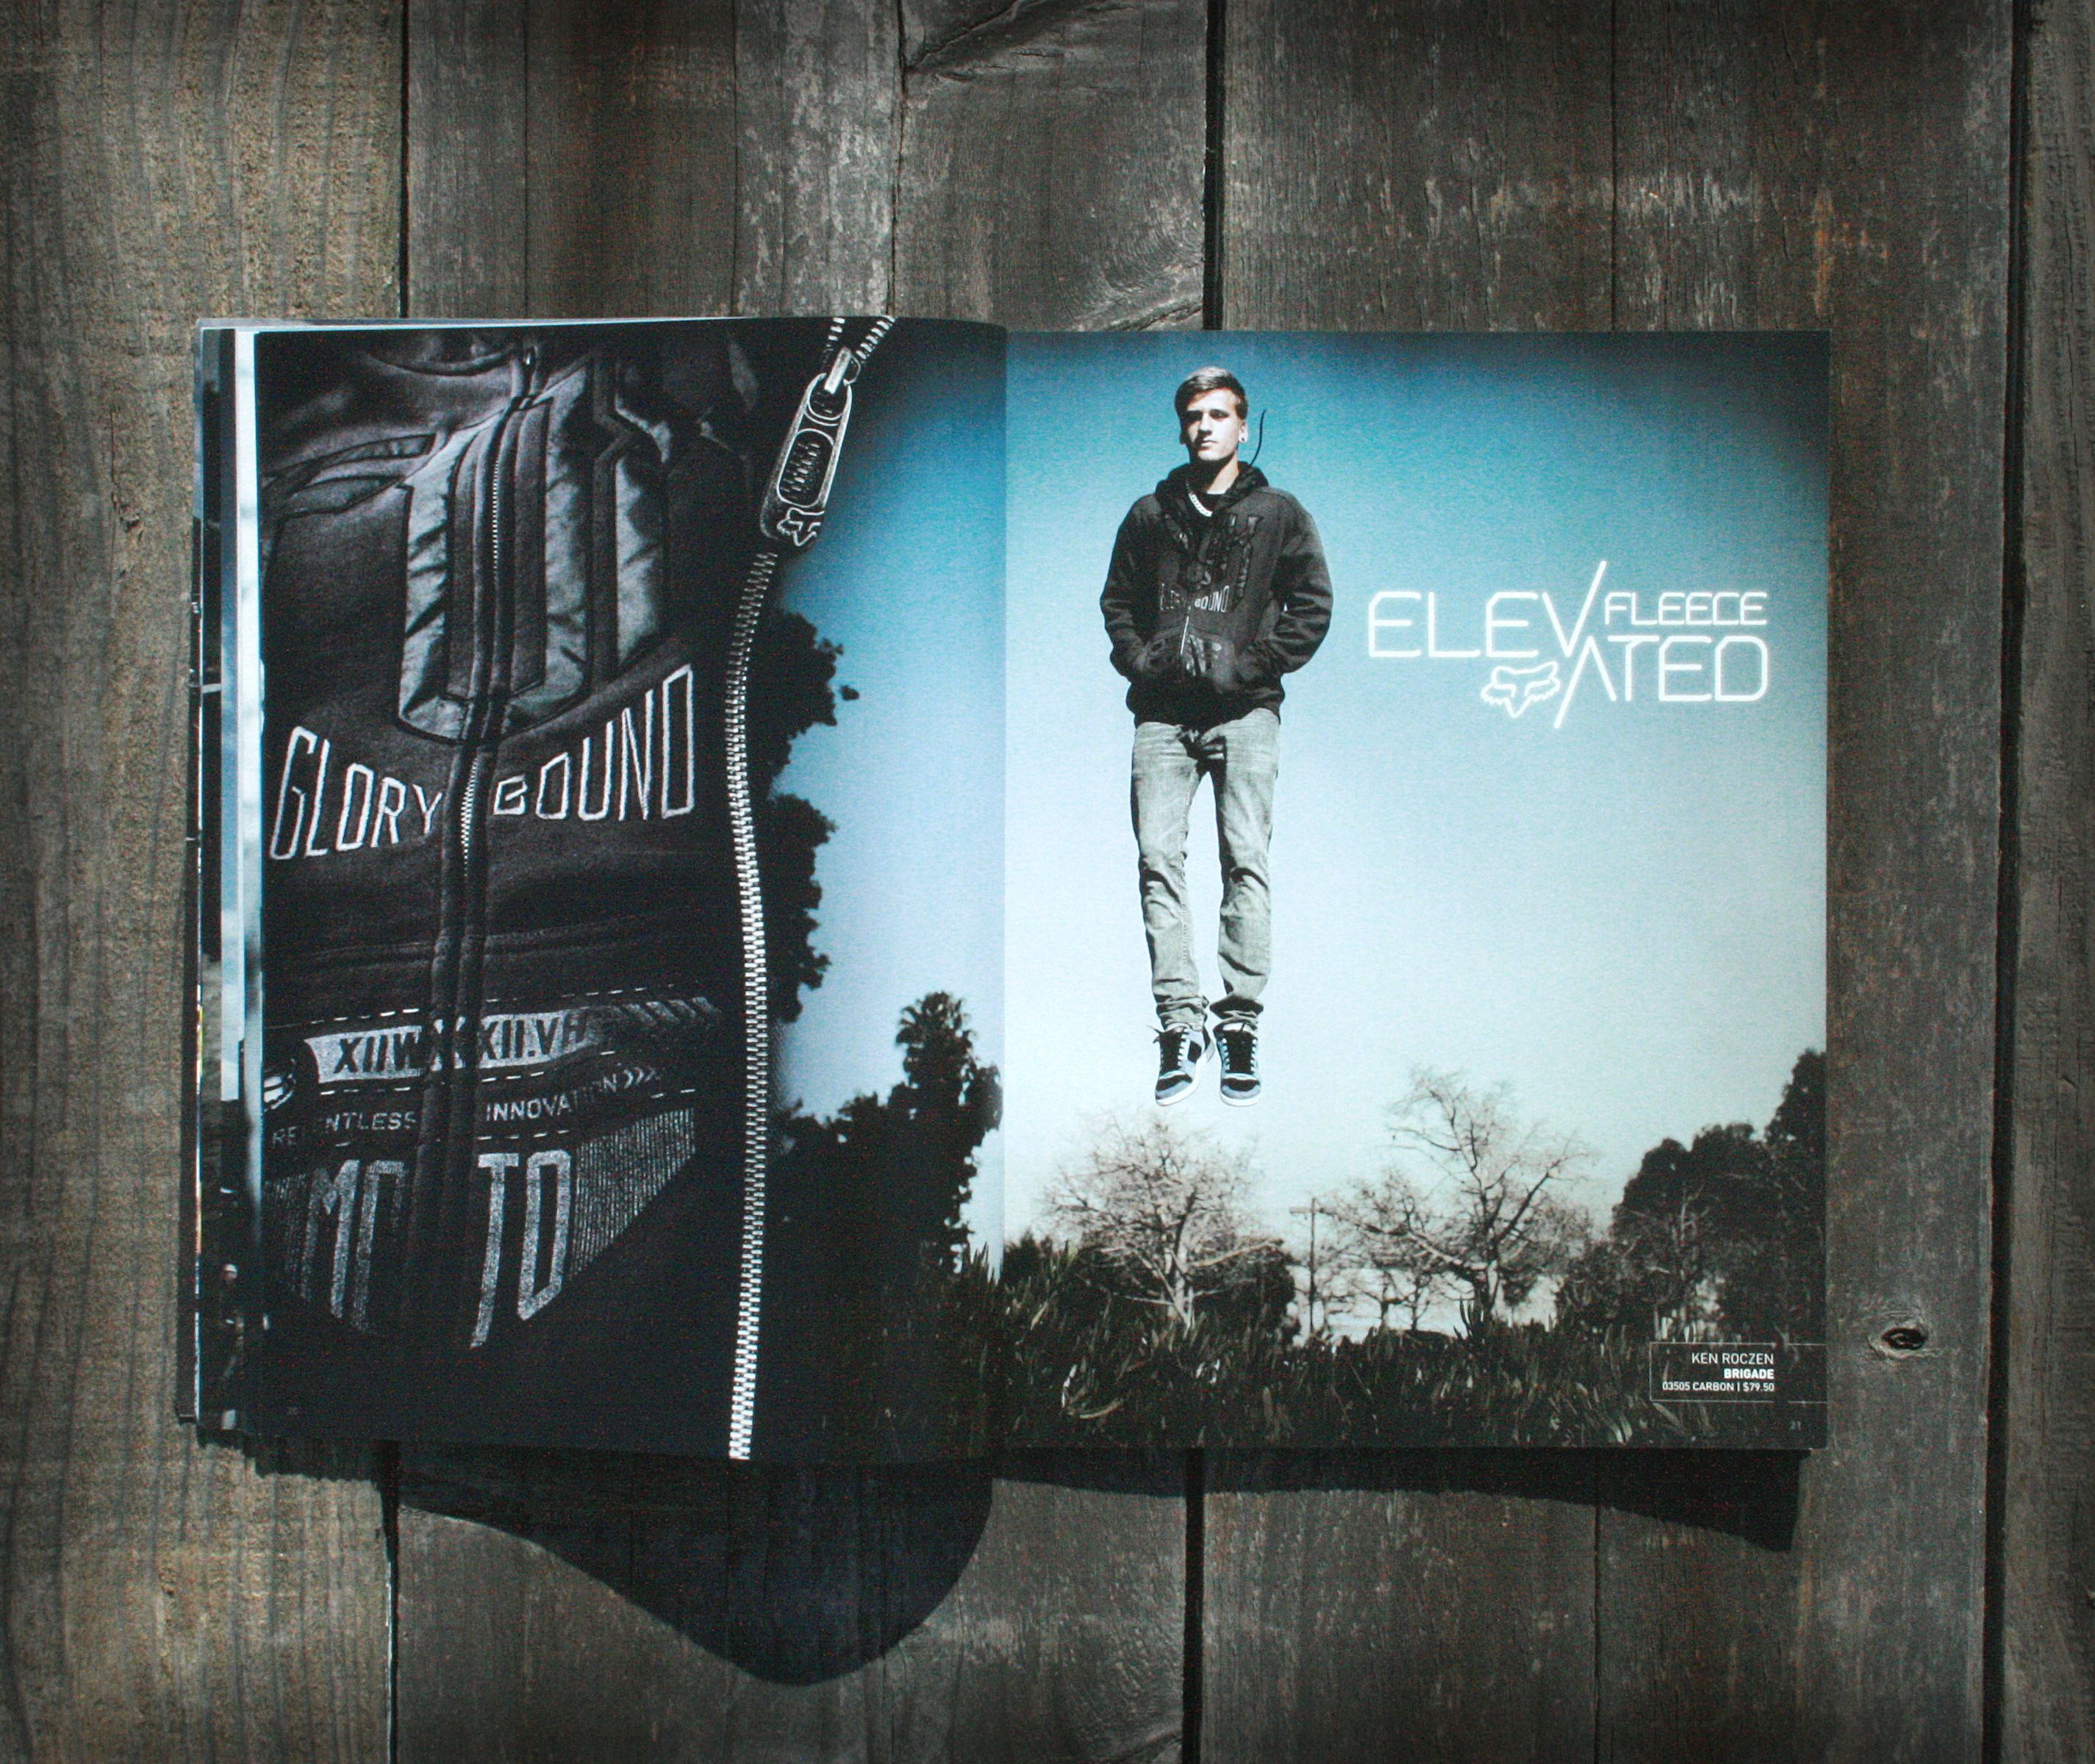 elevated fleece catalog spread